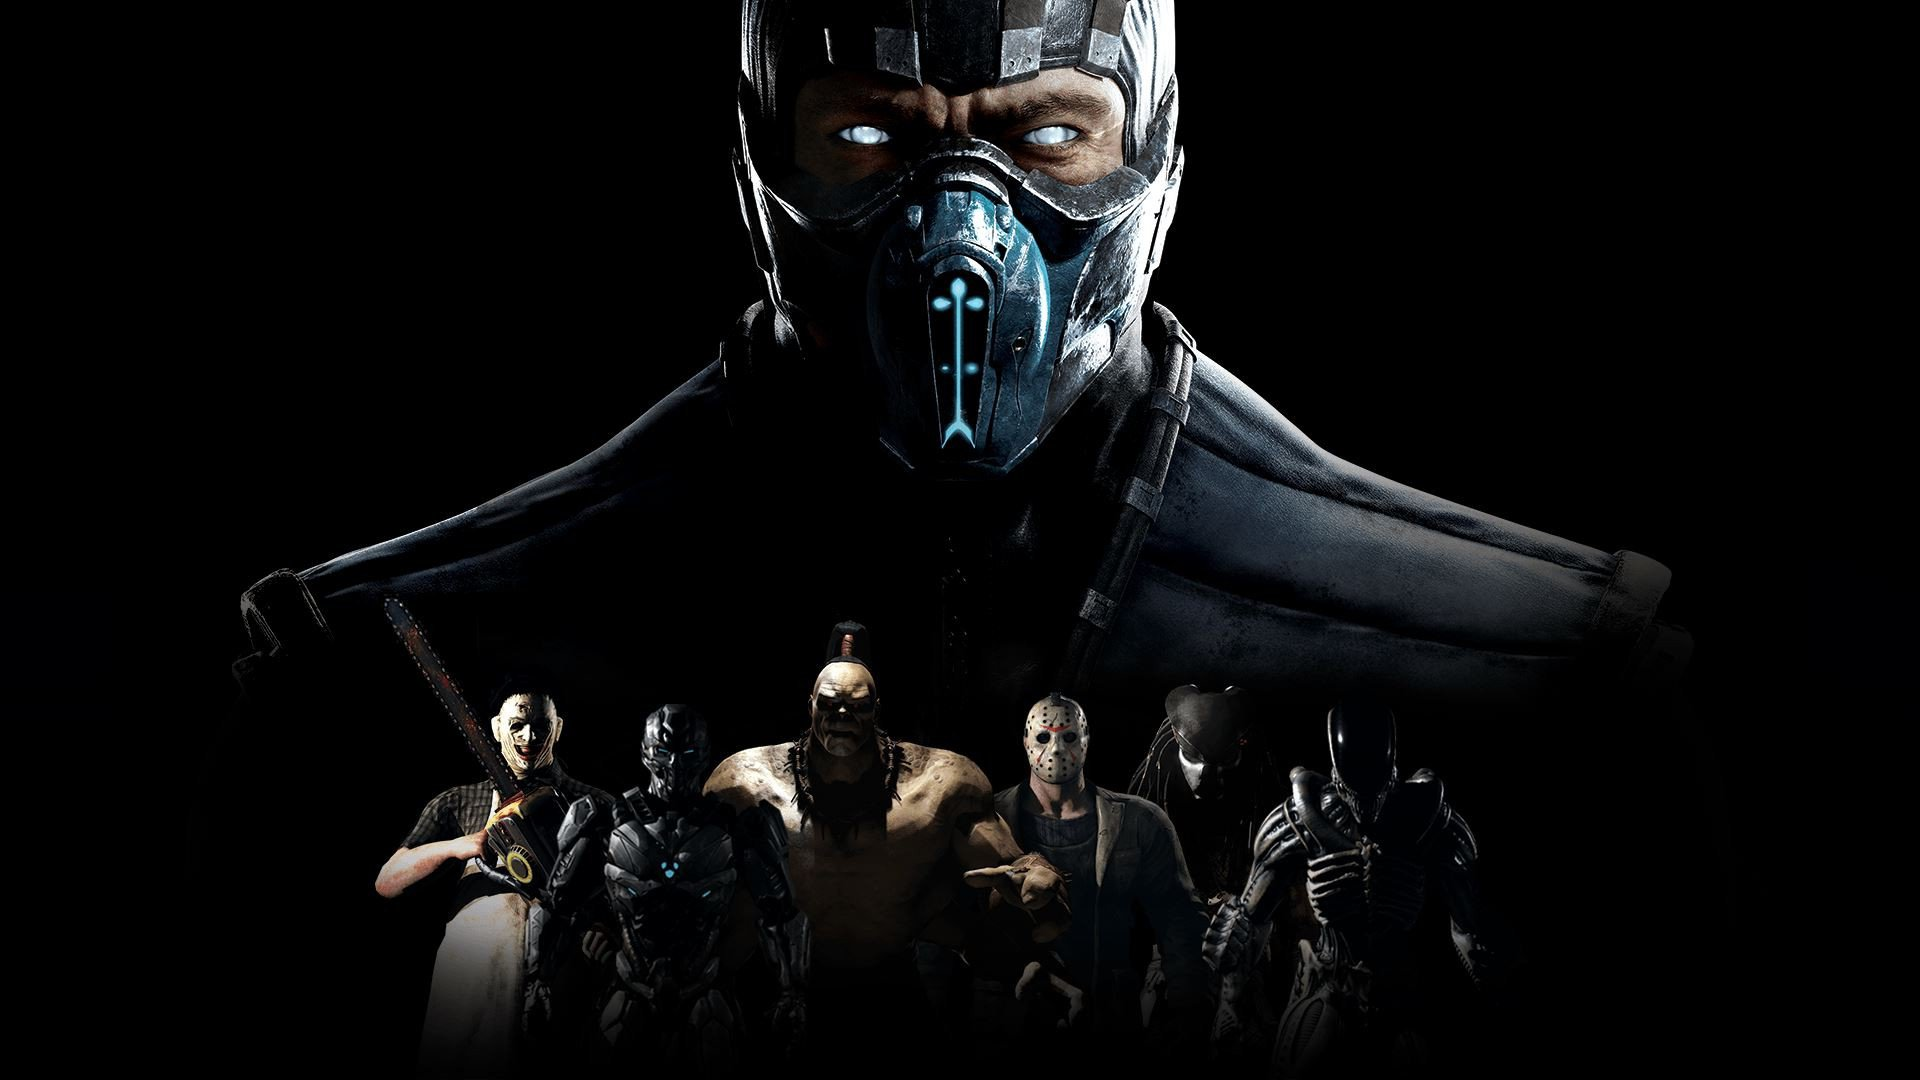 Mortal Kombat 4k Ultra Hd Wallpaper And Background Image: Mortal Kombat XL Torrent Download